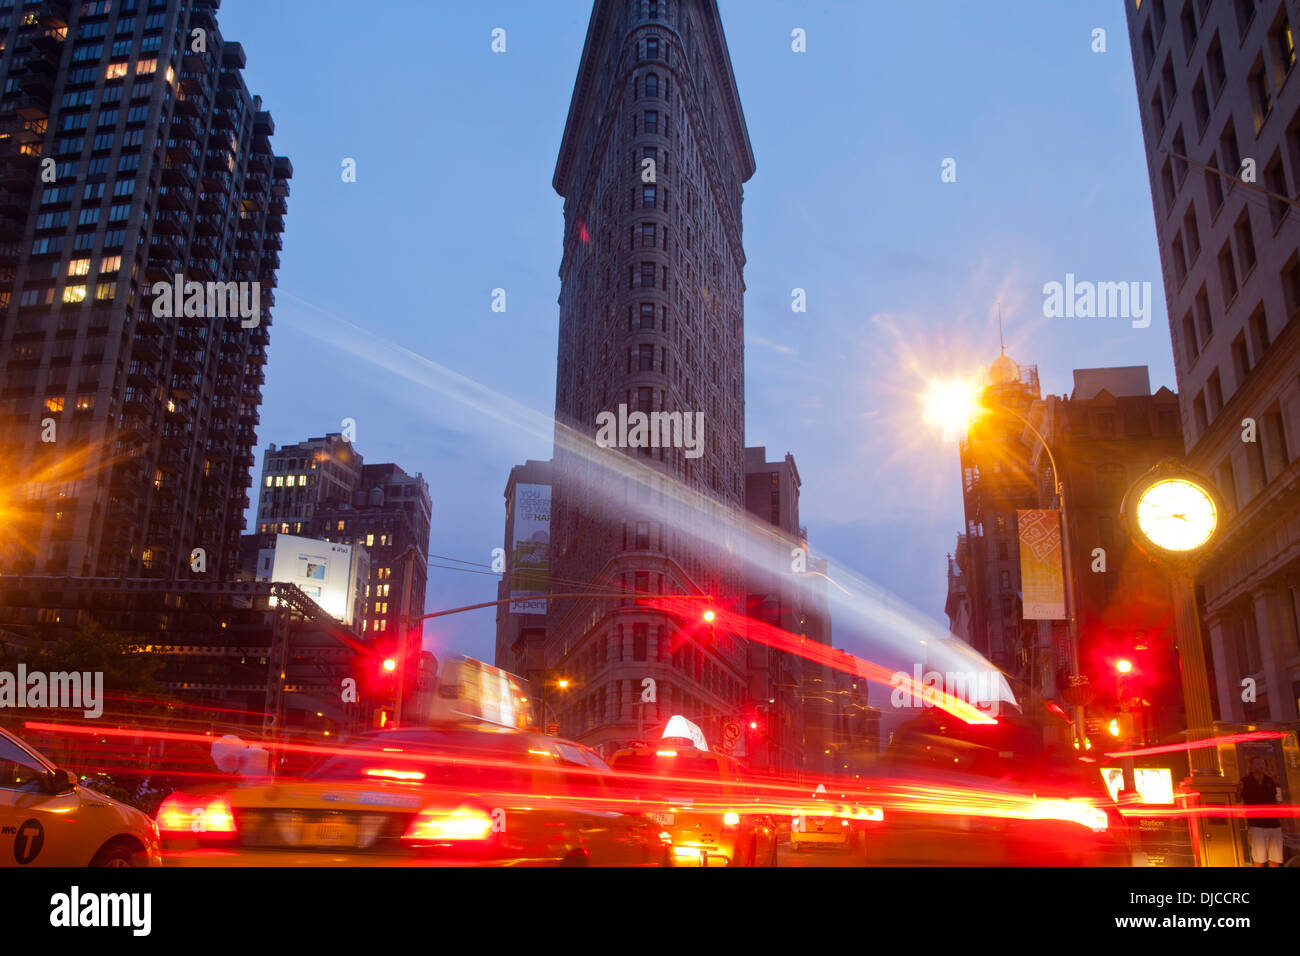 Traffic streaks down 5th Avenue next to the Flat Iron Building at dusk, New York City, USA - Stock Image